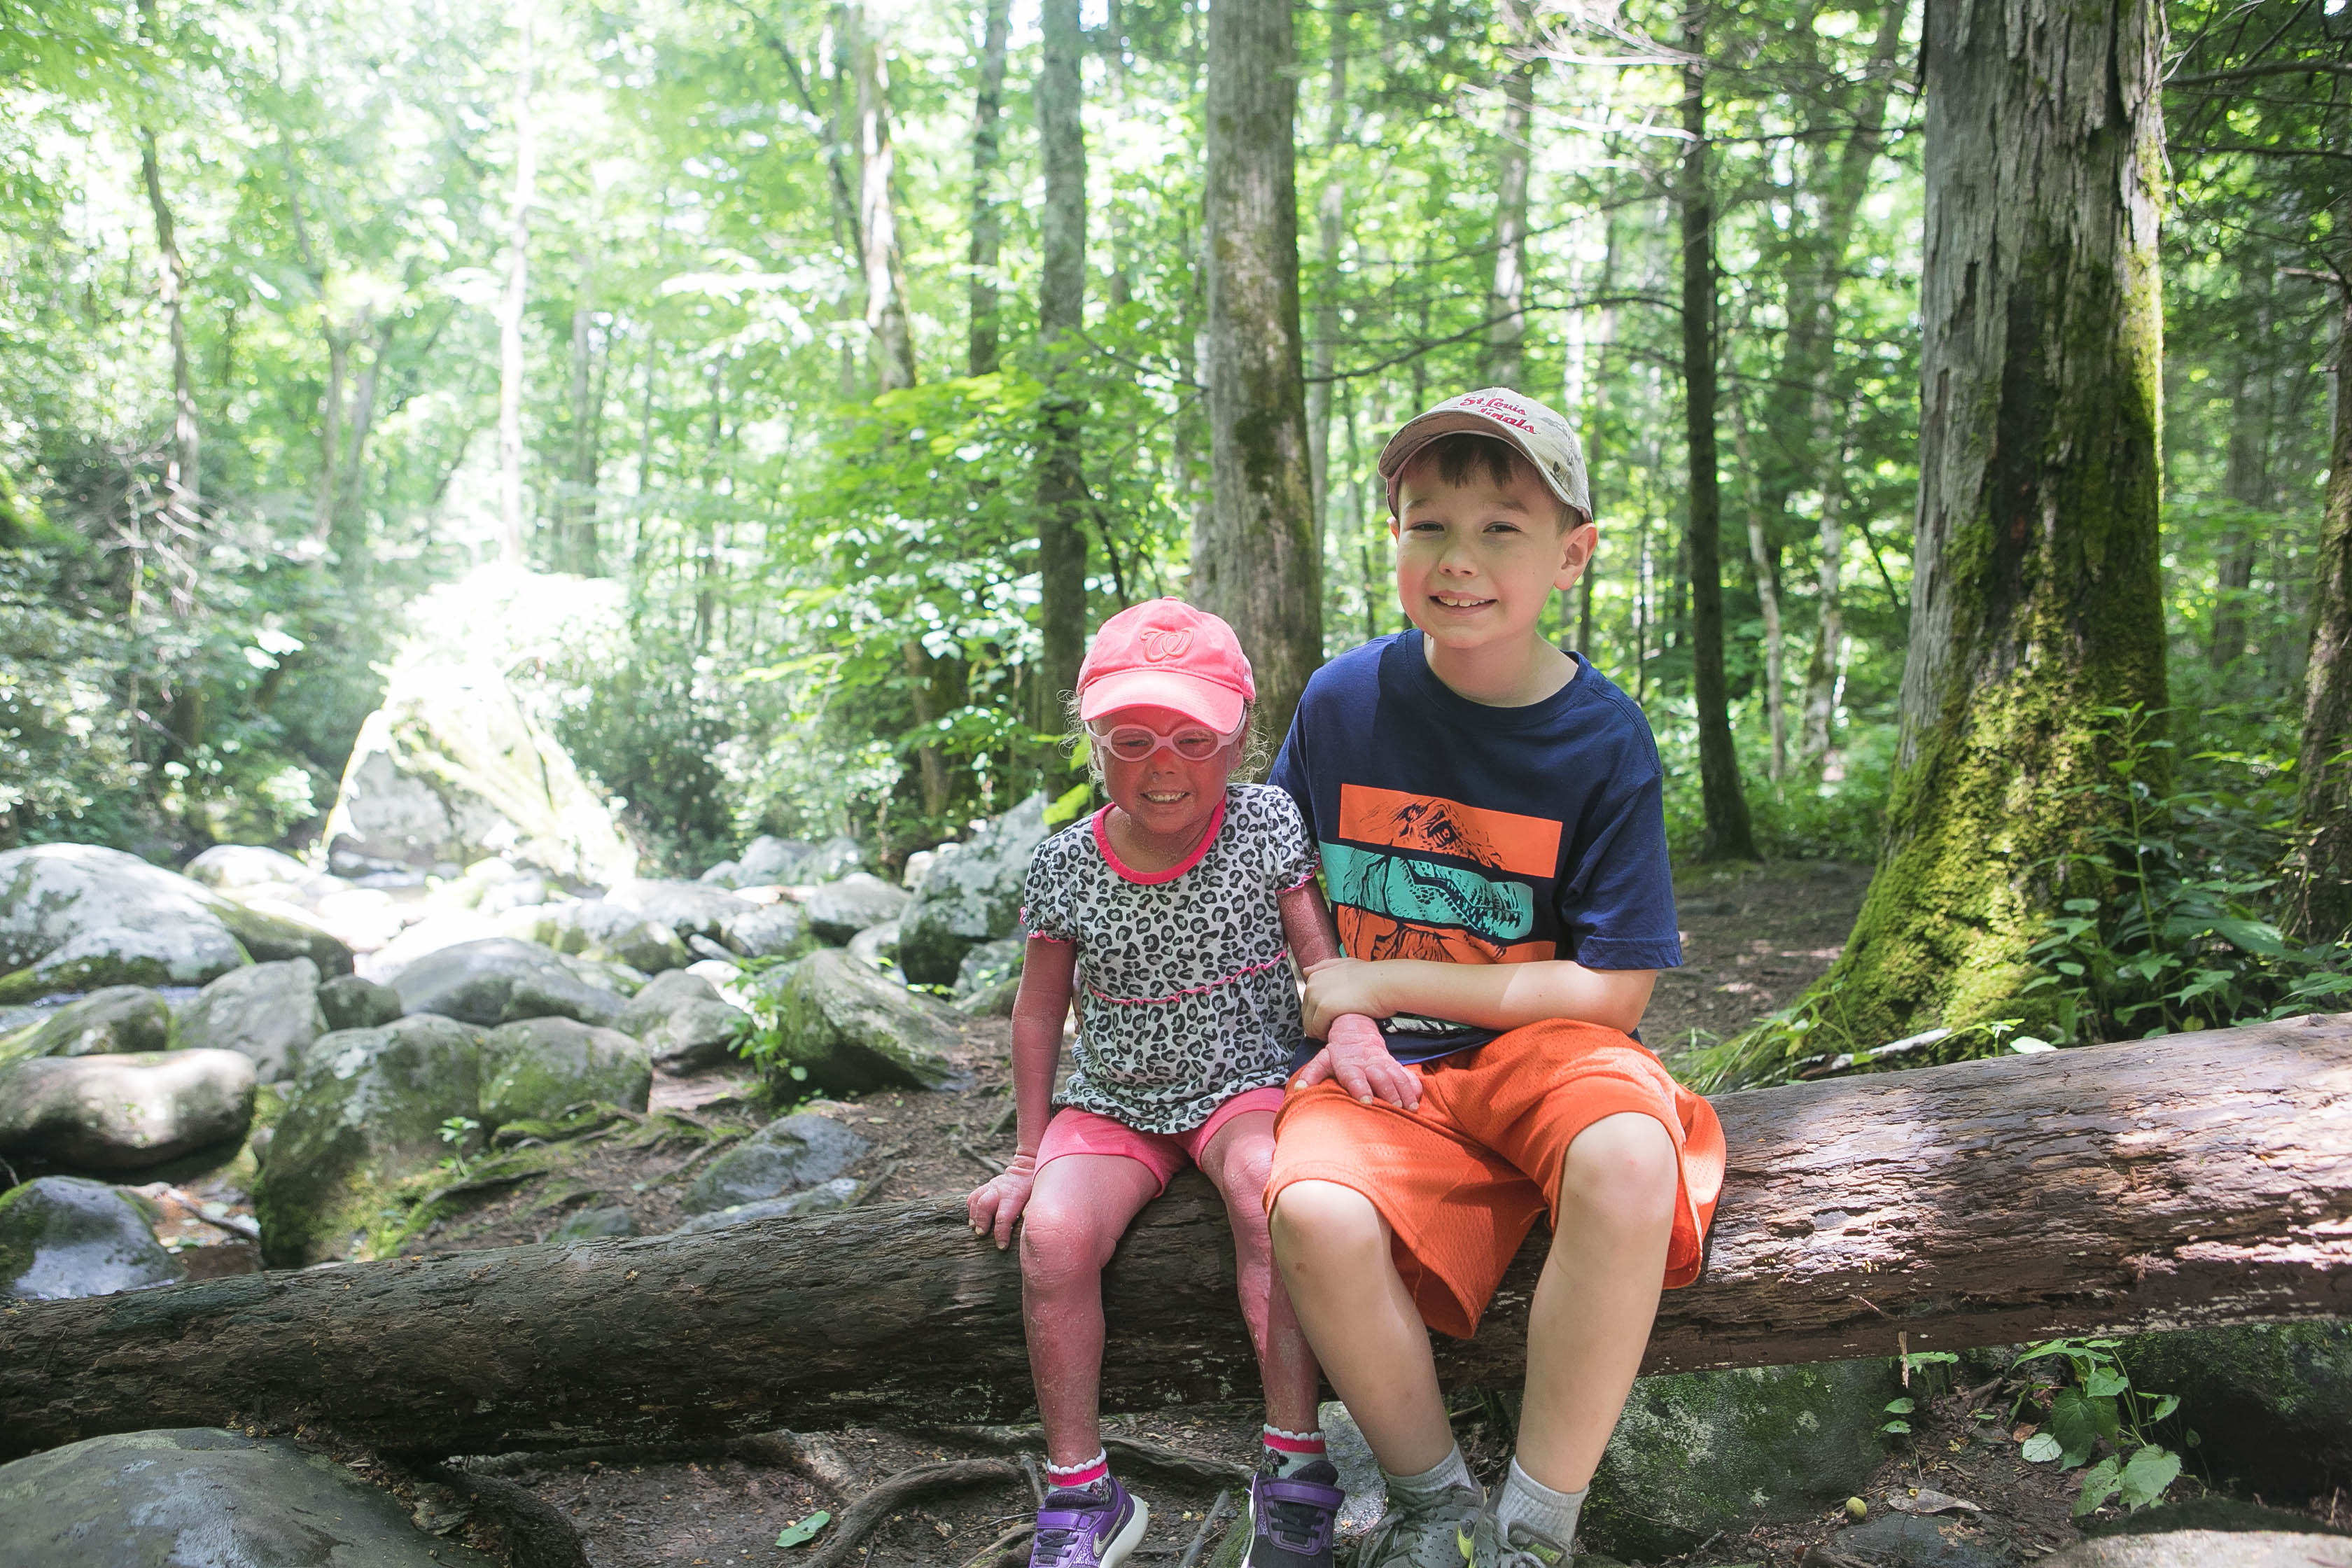 Things to do with kids in the Smoky Mountains